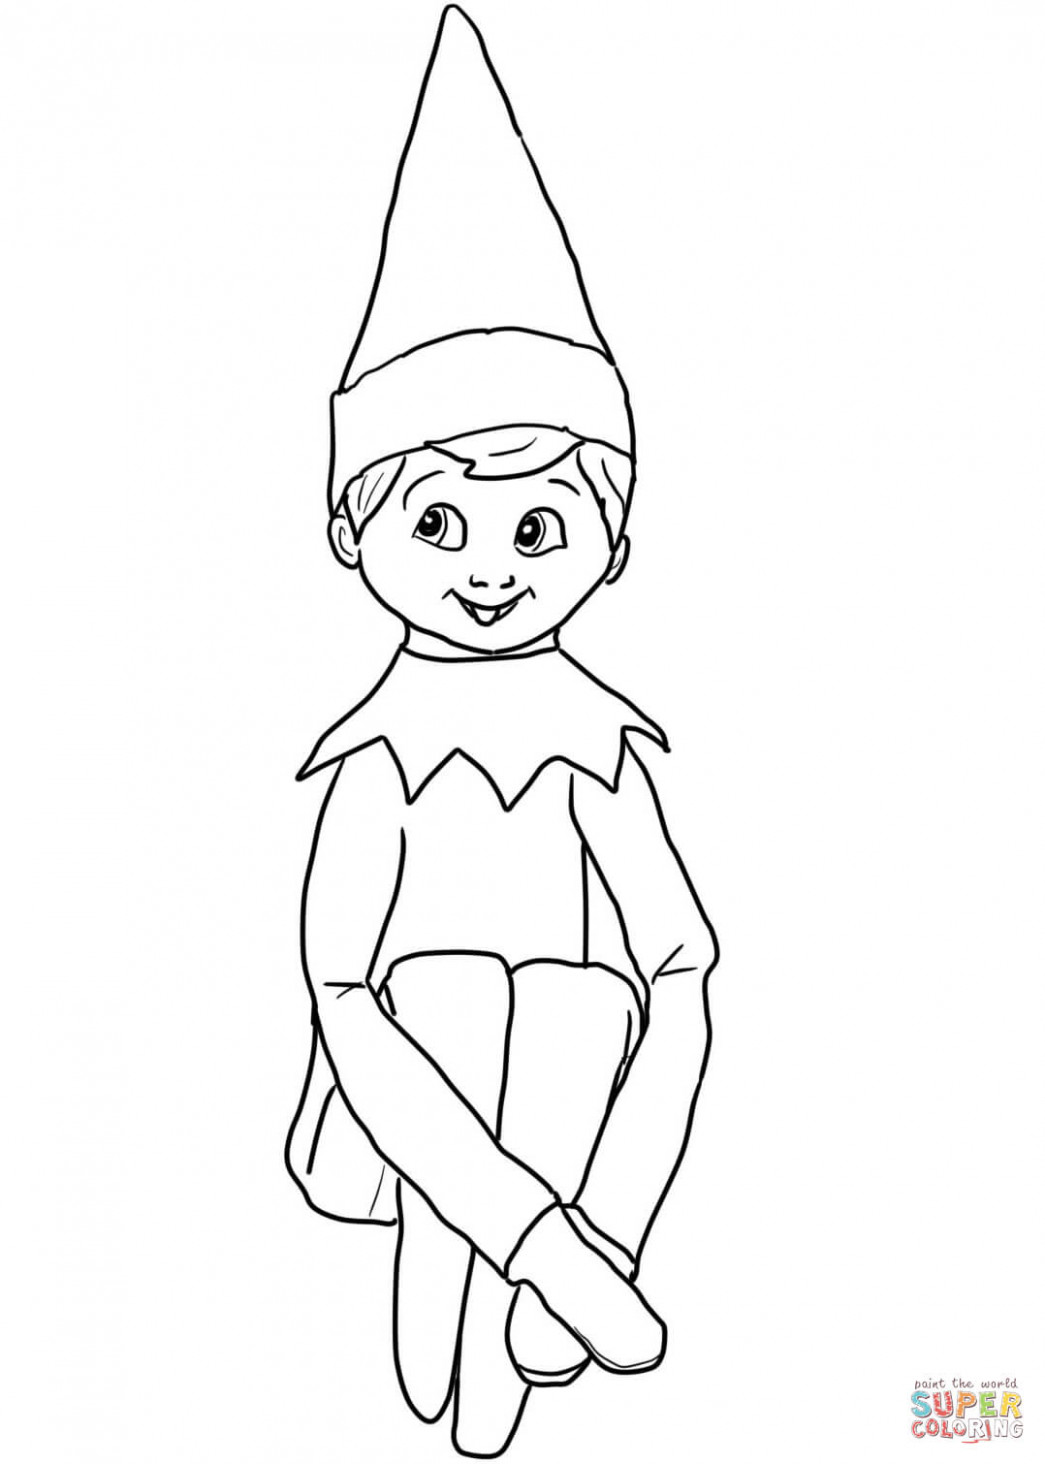 Christmas Elf on Shelf coloring page | Free Printable Coloring Pages – Christmas Coloring Elf